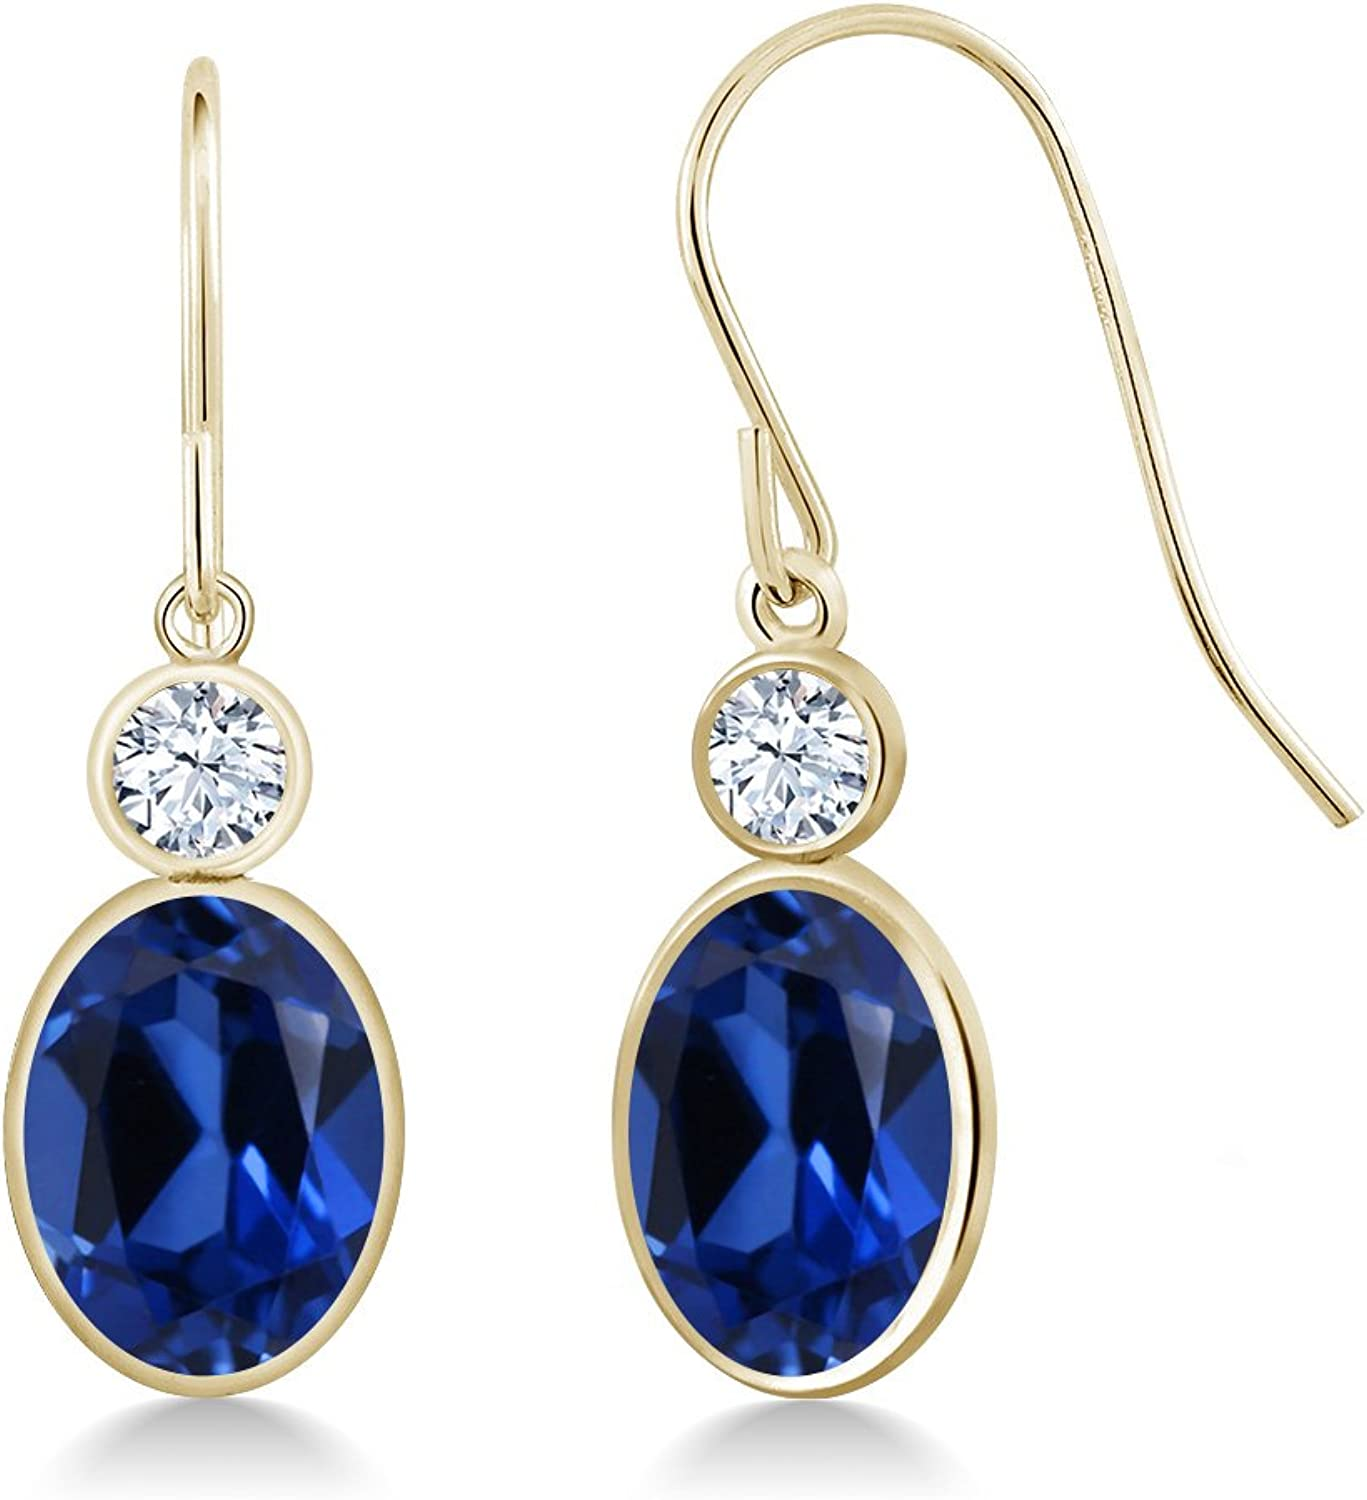 3.50 Ct Oval bluee Simulated Sapphire 14K Yellow gold Earrings